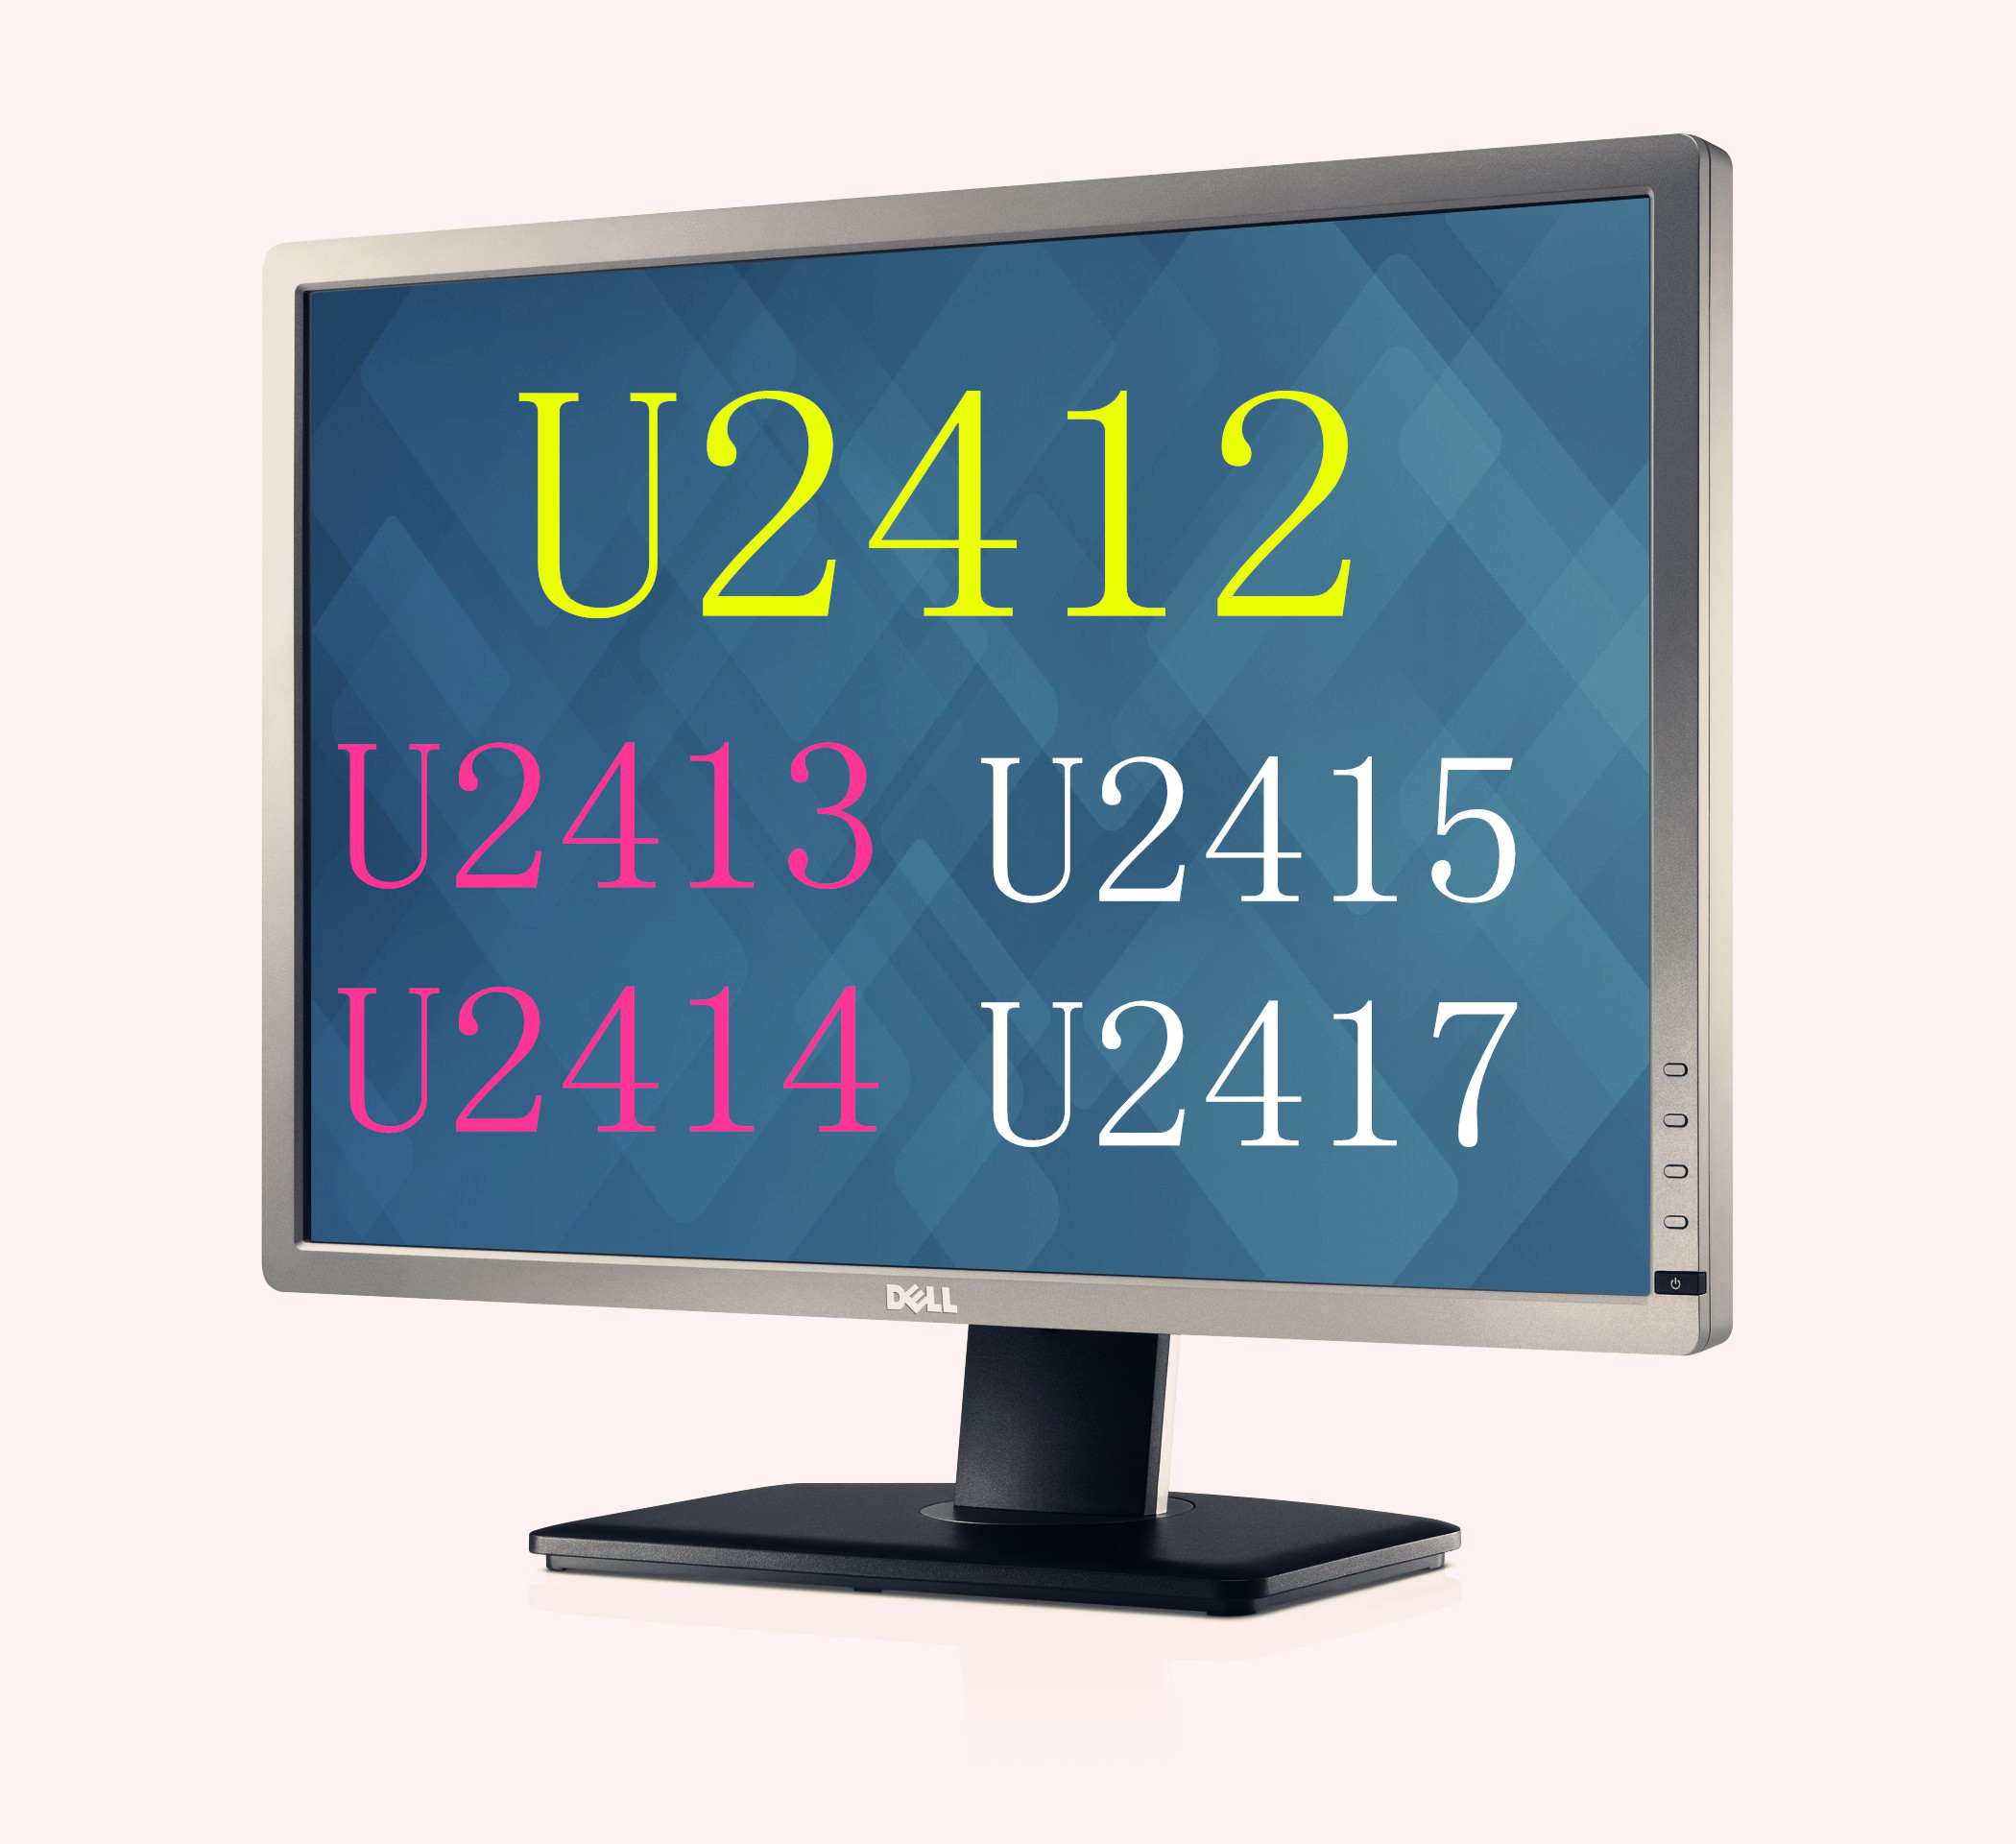 DELL Dell U2412 M studio repair picture DP HD 16 to 10 IPS face does not  hurt the eye U2415H